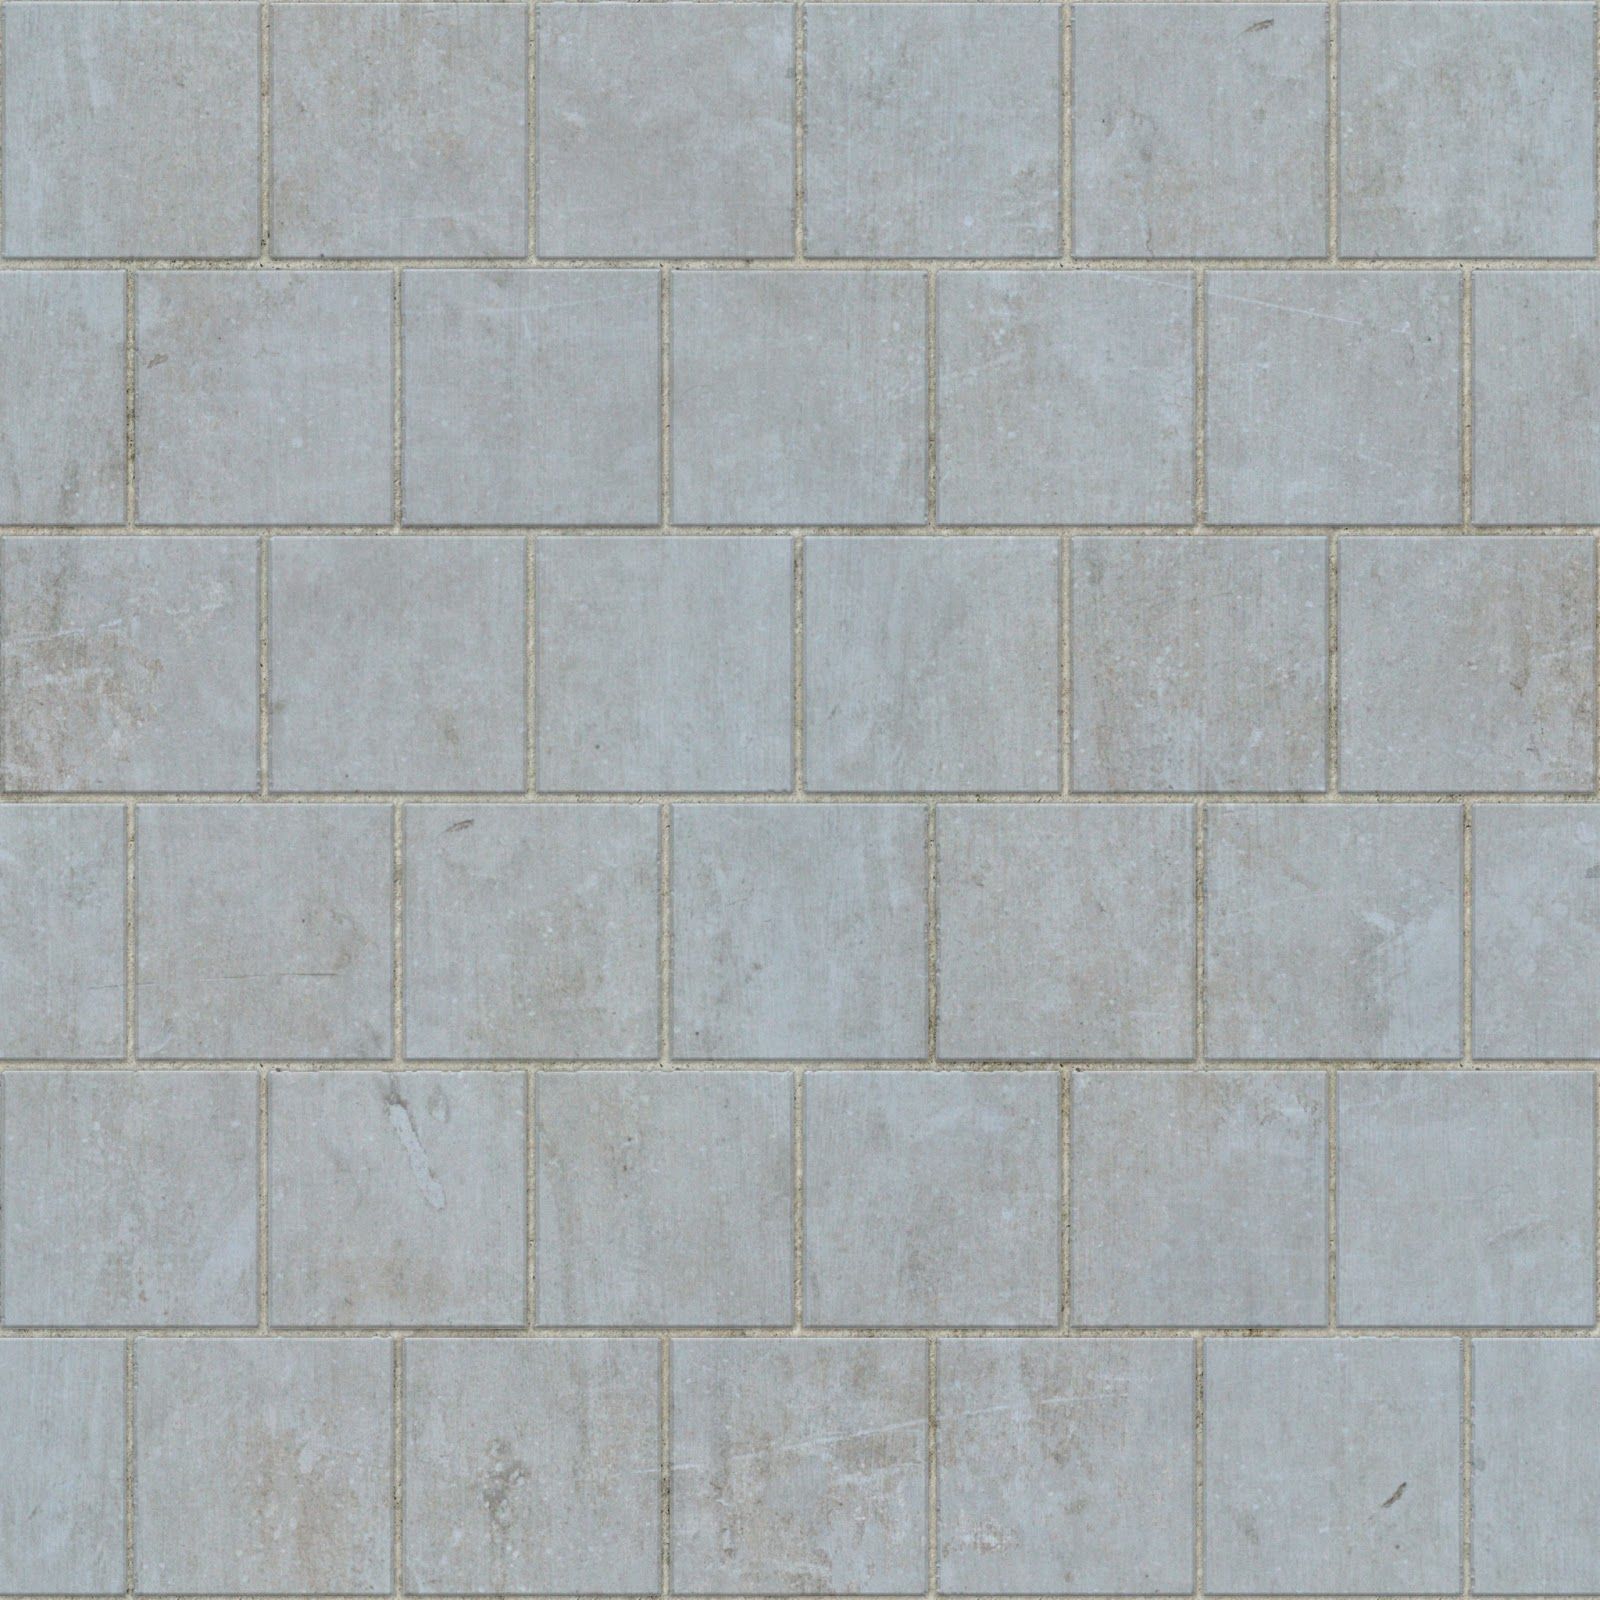 Brick tiles concrete panels seamless texture 2048x2048